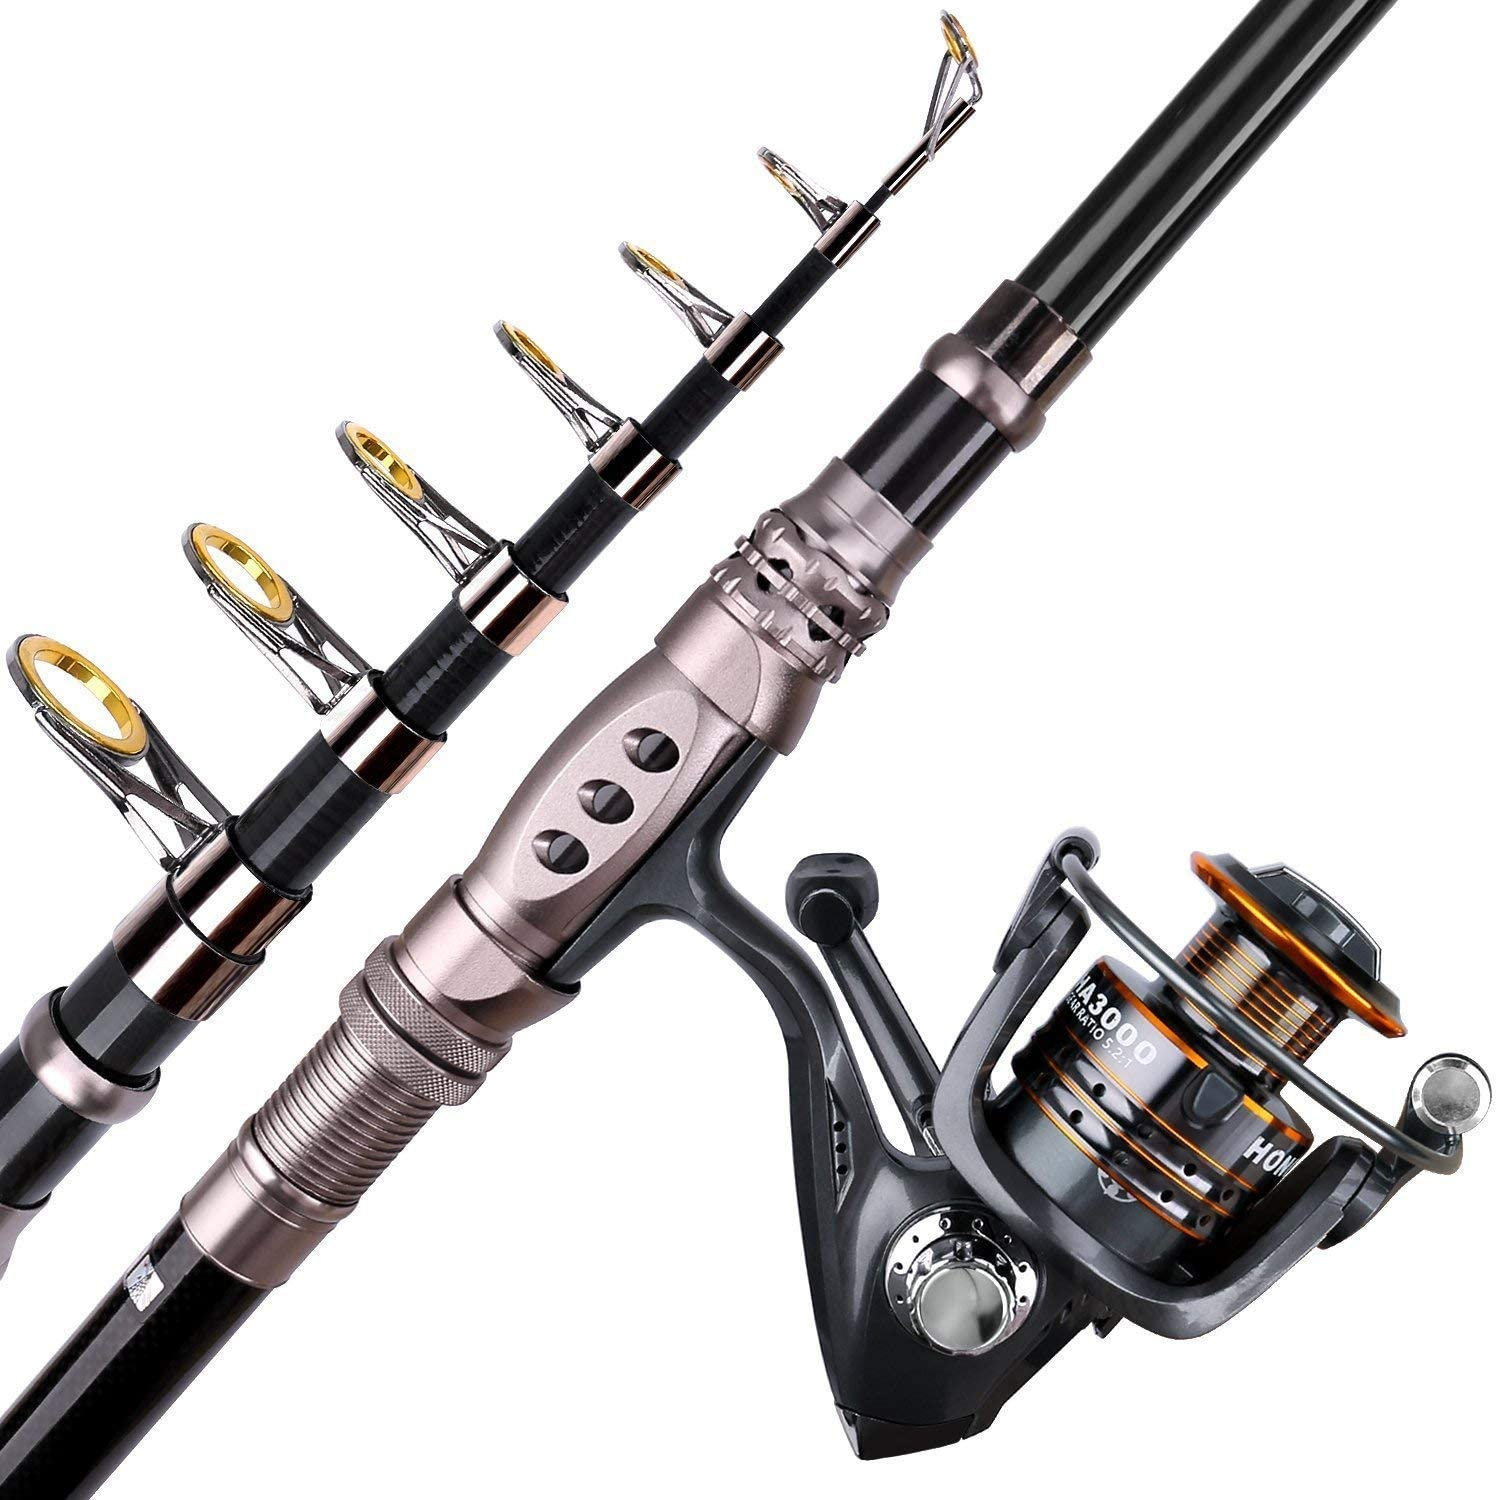 PLUSINNO Fishing Rod and Reel Combo for trout fish